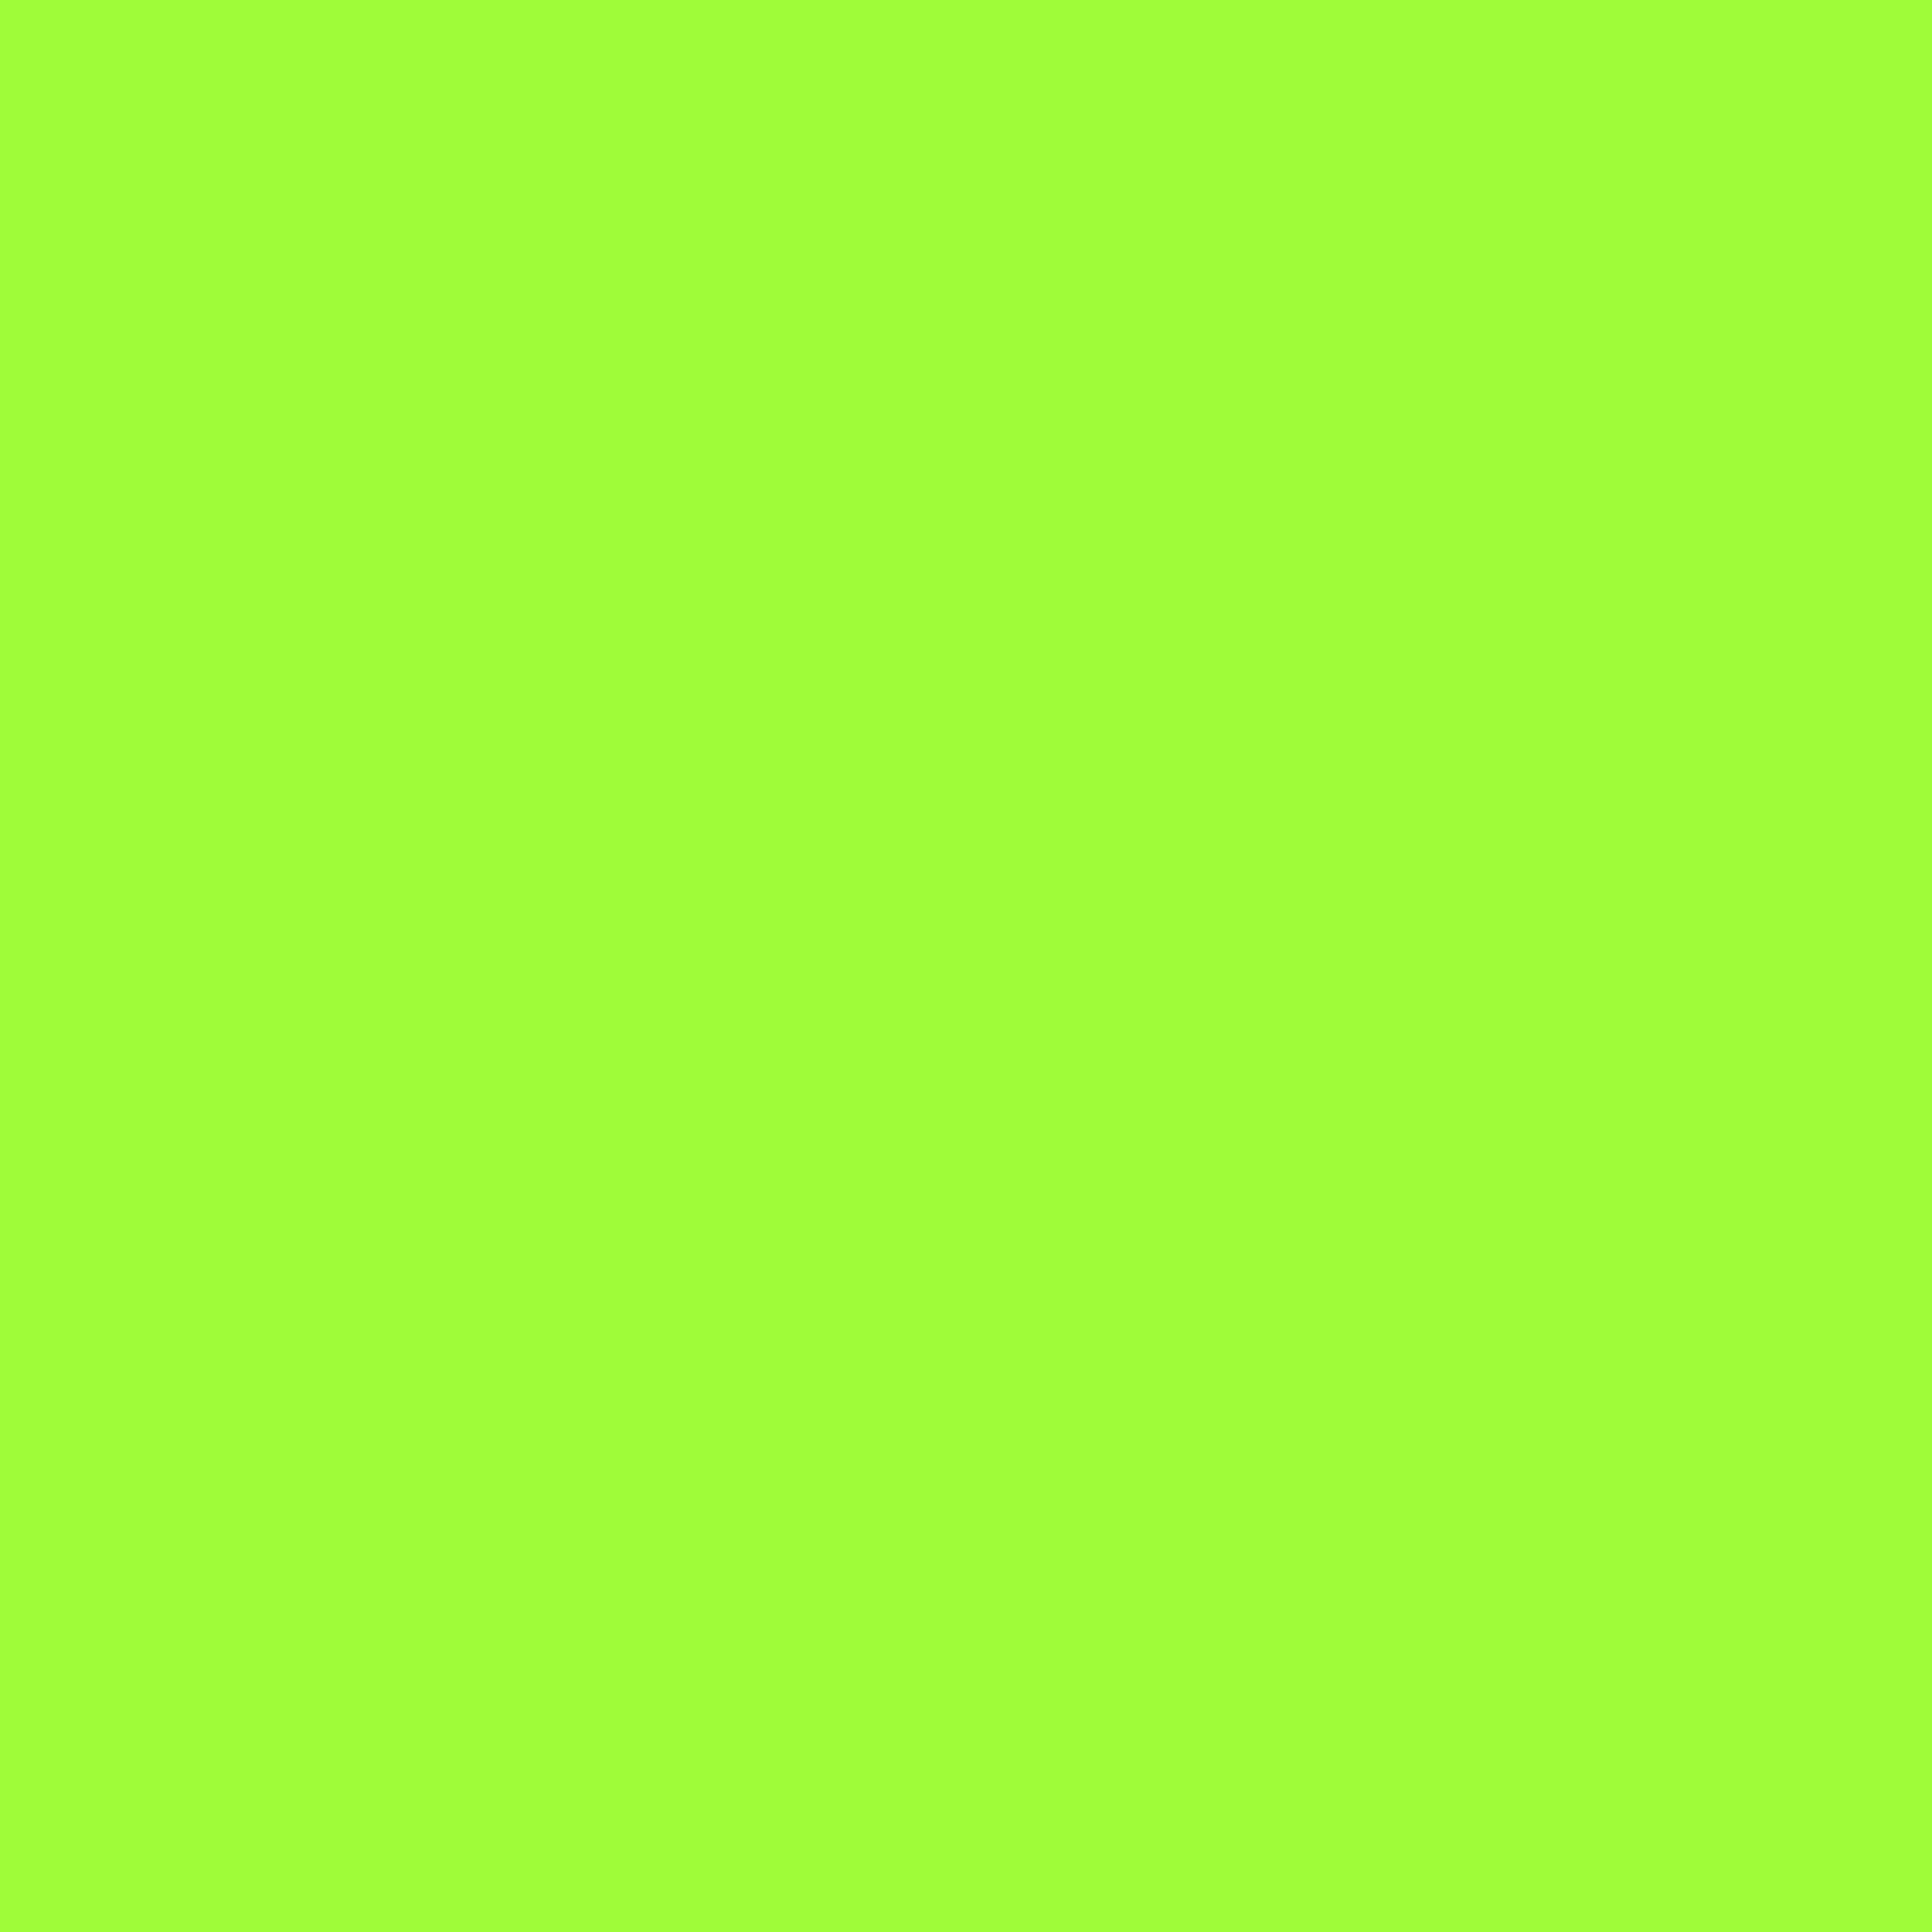 lime color background - photo #6